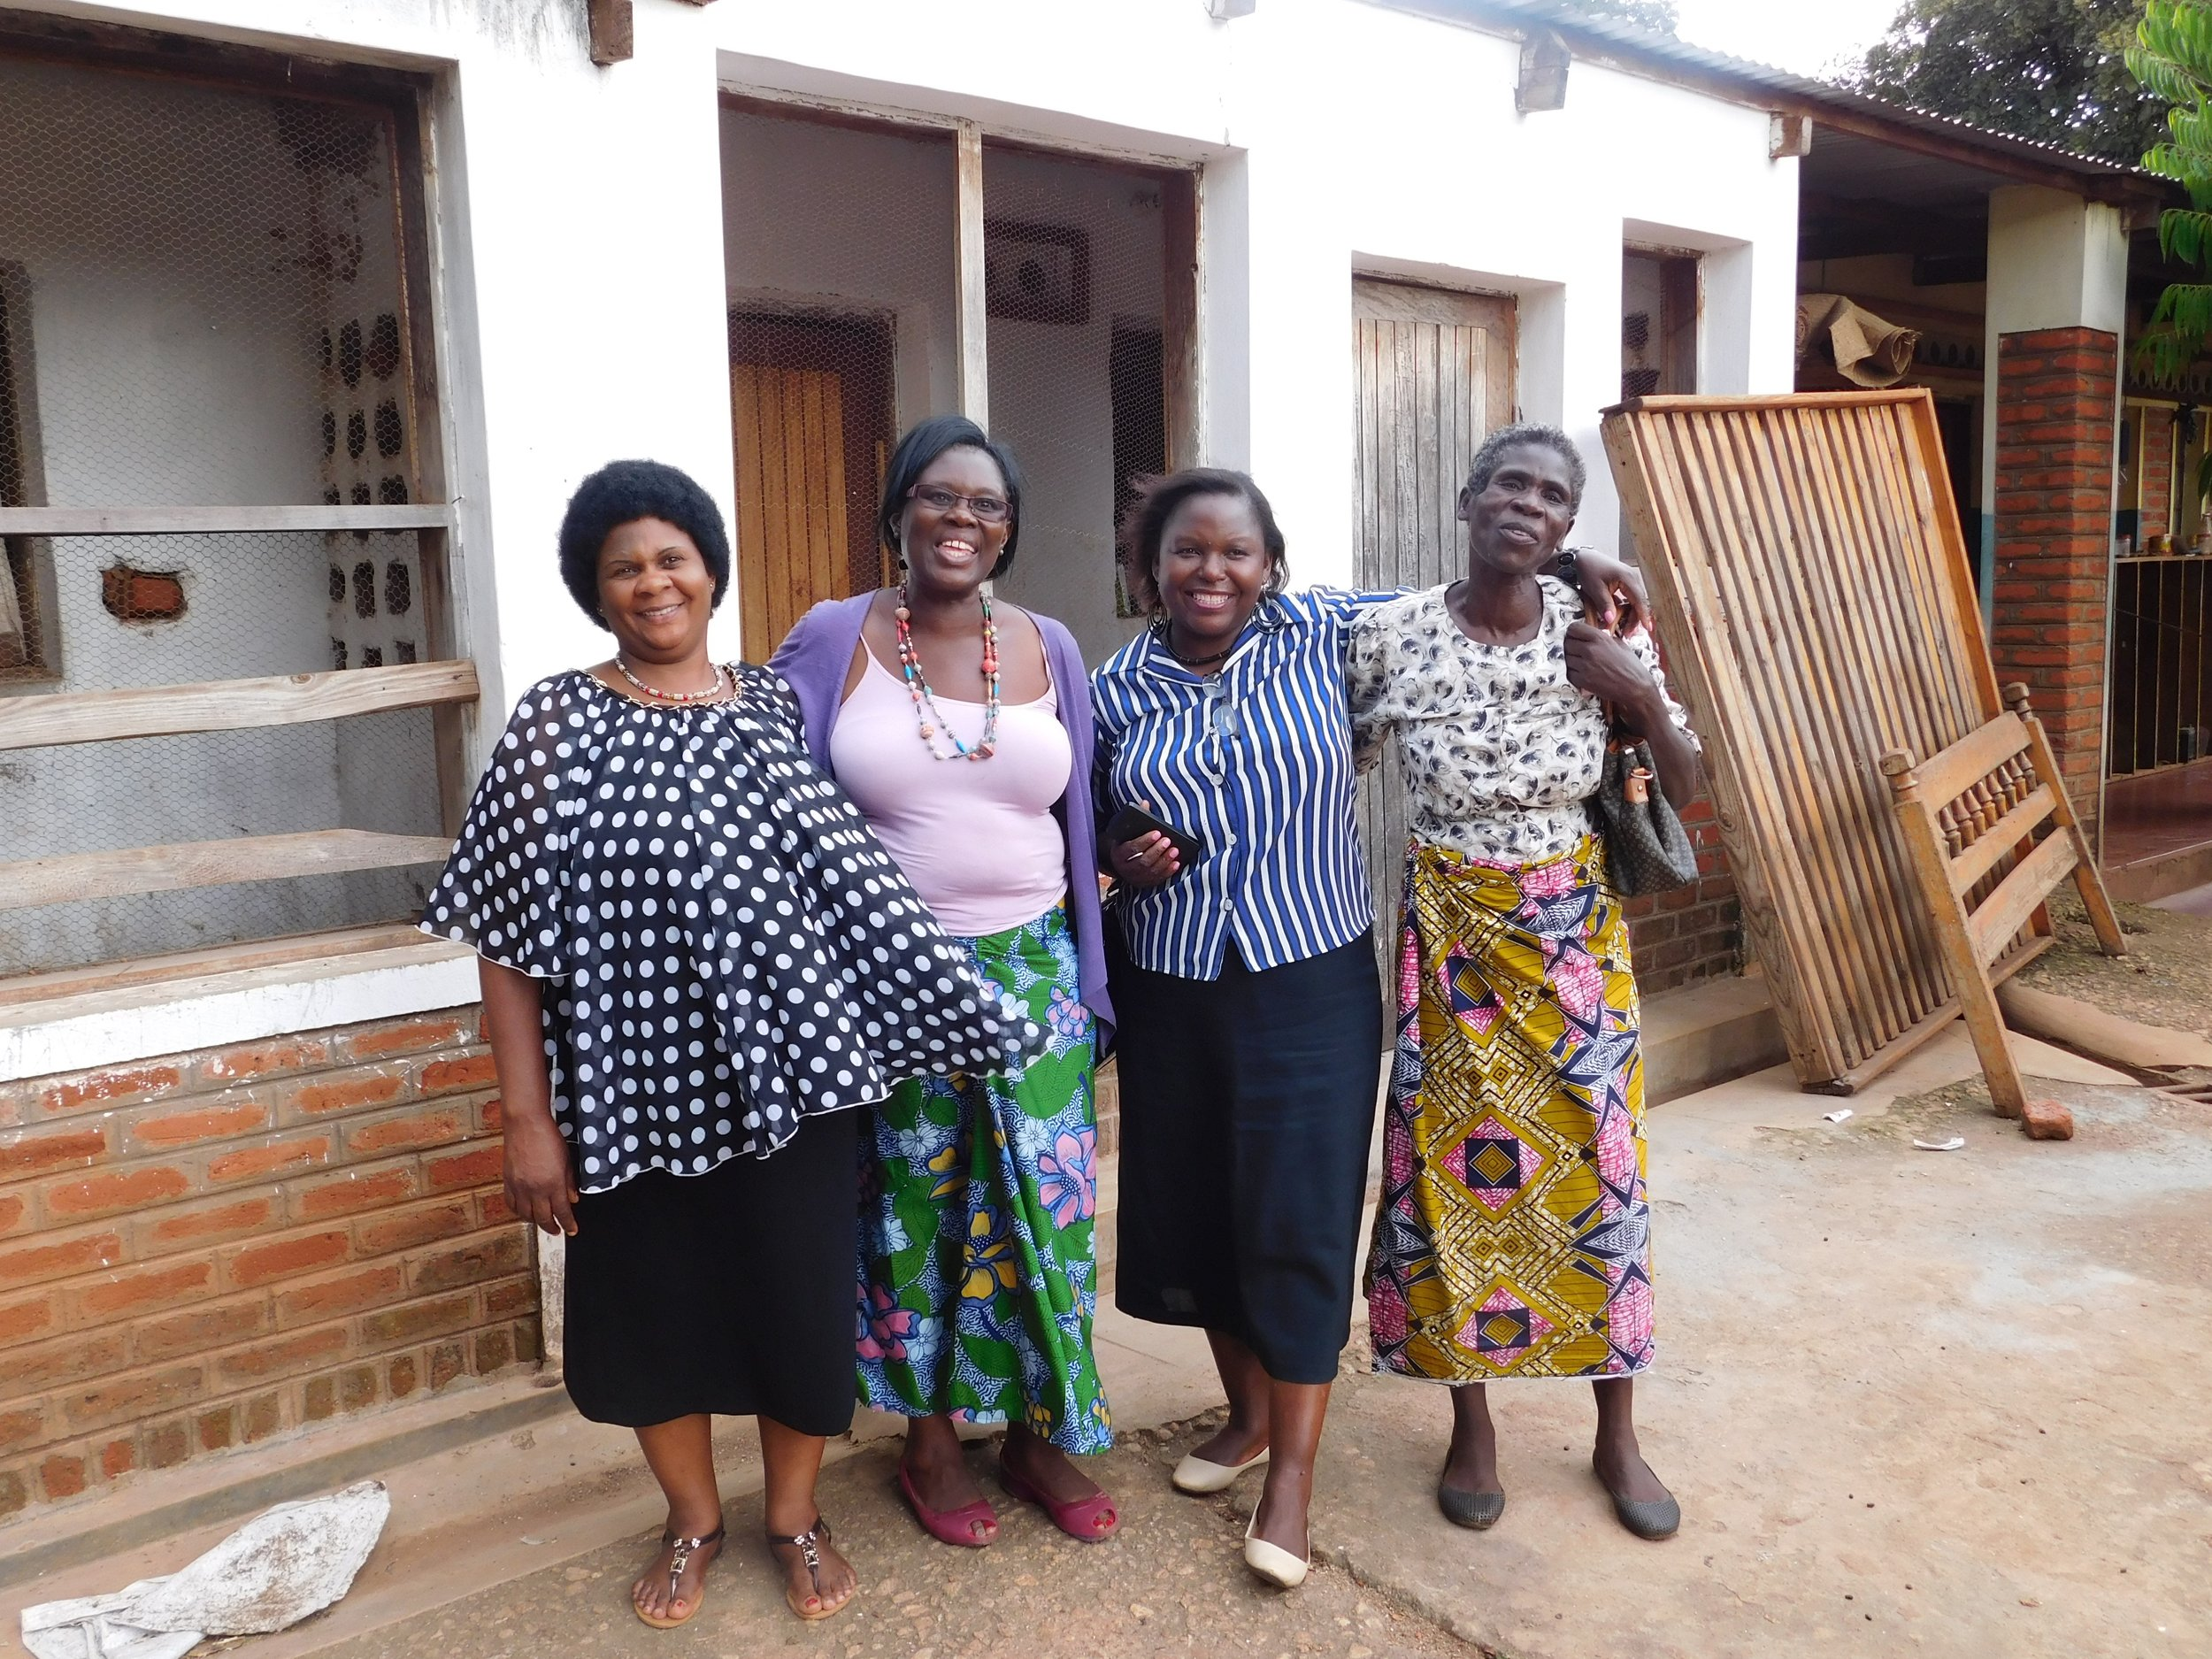 The women of Chitiipi COMSIP. Chitipi COMSIP is a women-led farm cooperative providing financial production resources to farmers so that they can gain financial independence, social capital, and the confidence to know they can succeed. Its founder, Barbara Banda, attended two sessions of Flame Tree Initiative's Development Entrepreneur Lab in 2015 and 2016.